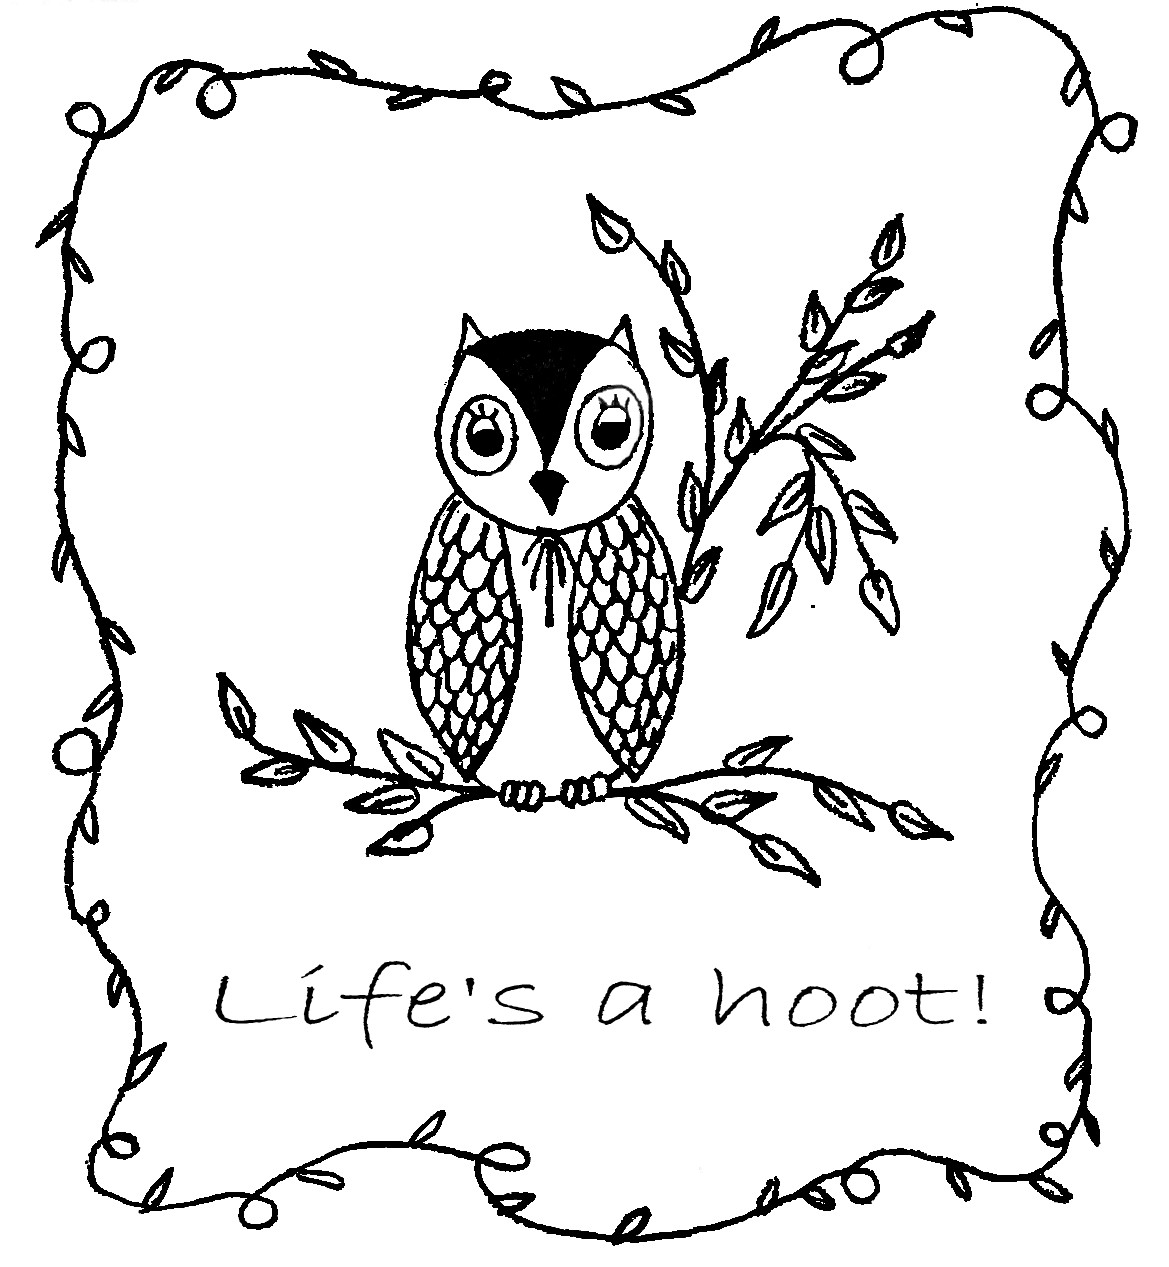 Sew little fabric by paula storm free owl embroidery designs patterns that you can buy direct from me my pdf patterns that i would email to you if you wish to buy one and a page of my free embroidery designs bankloansurffo Image collections